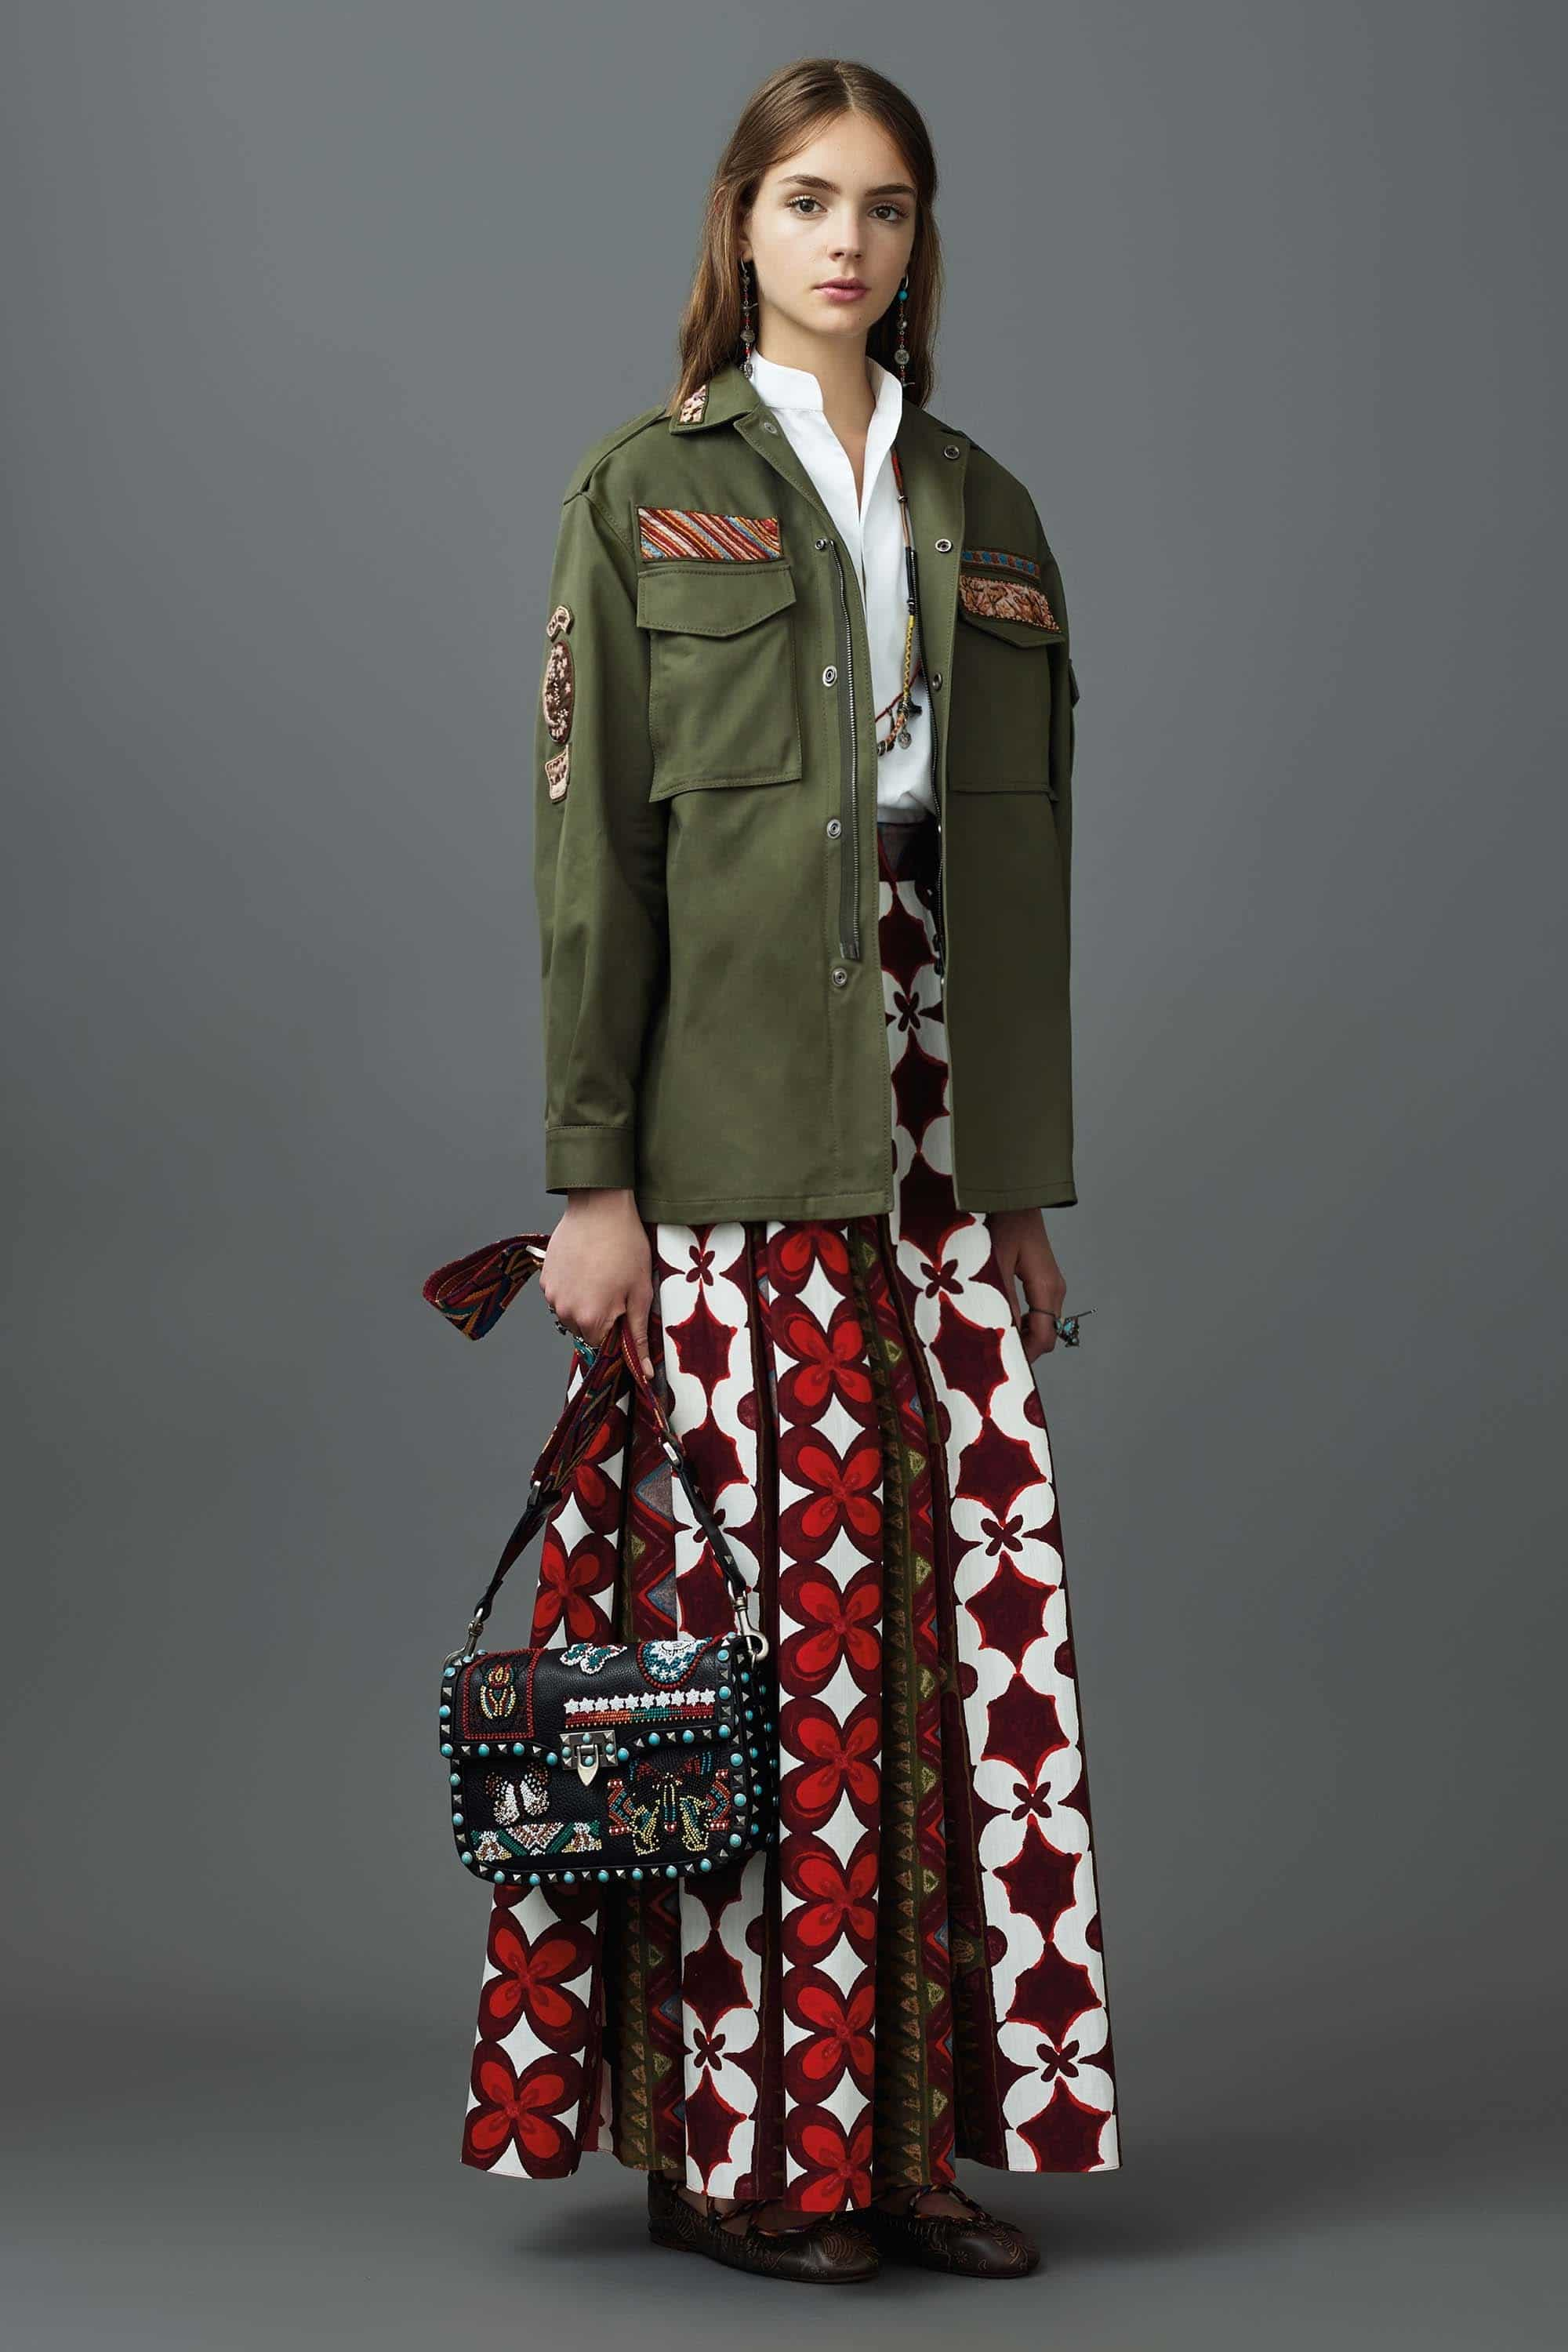 Resort Valentino bag collection pictures foto